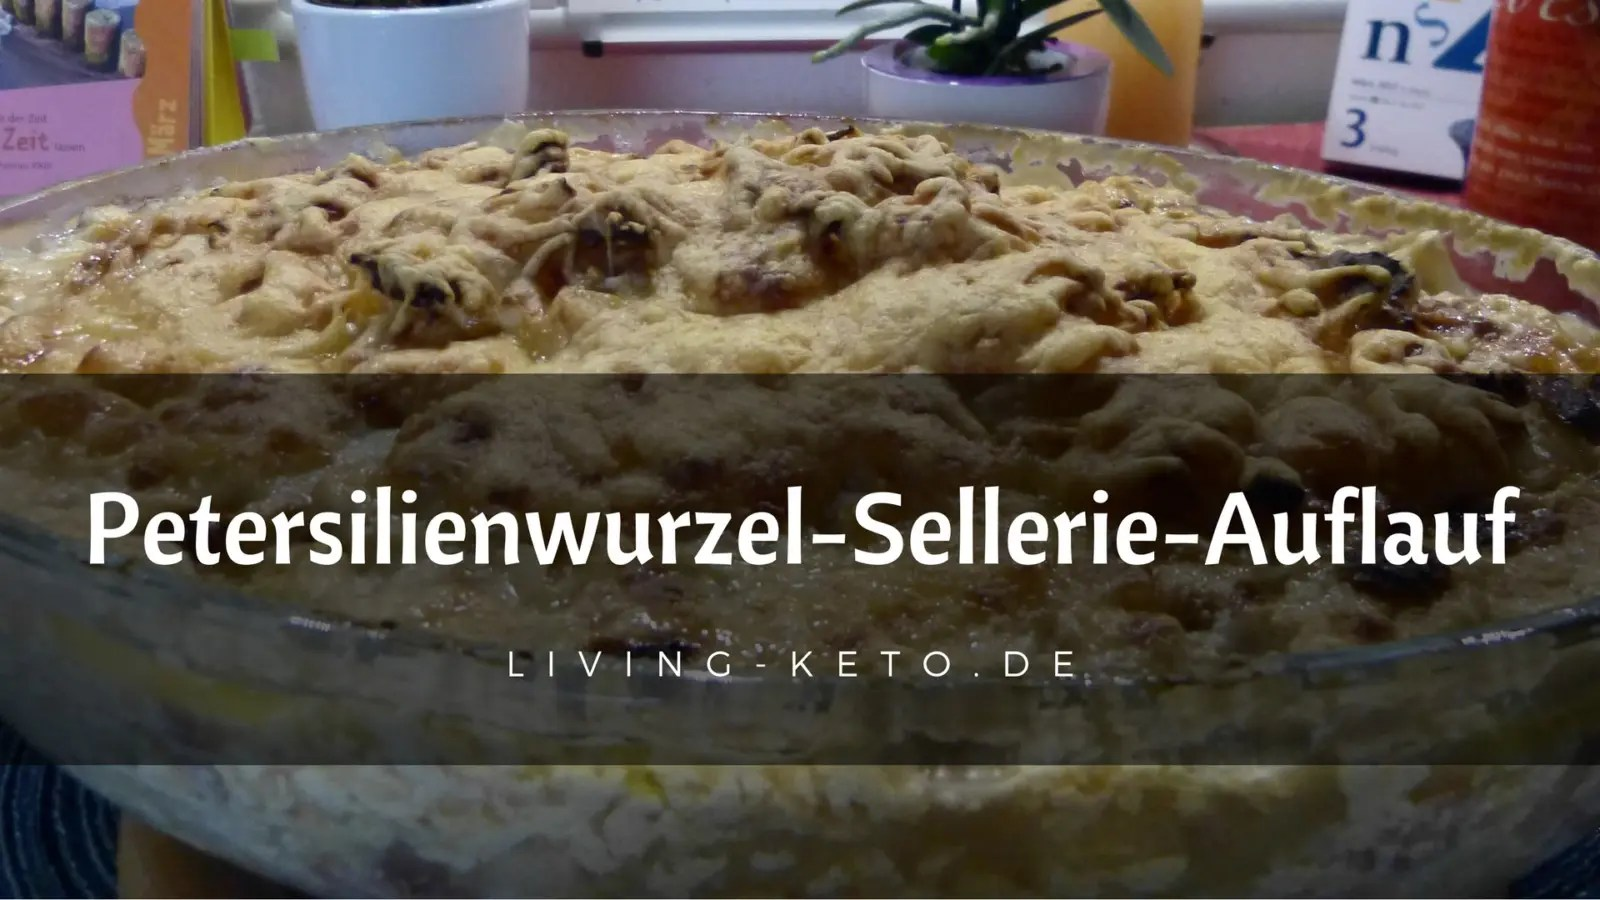 Read more about the article Petersilienwurzel-Sellerie-Auflauf